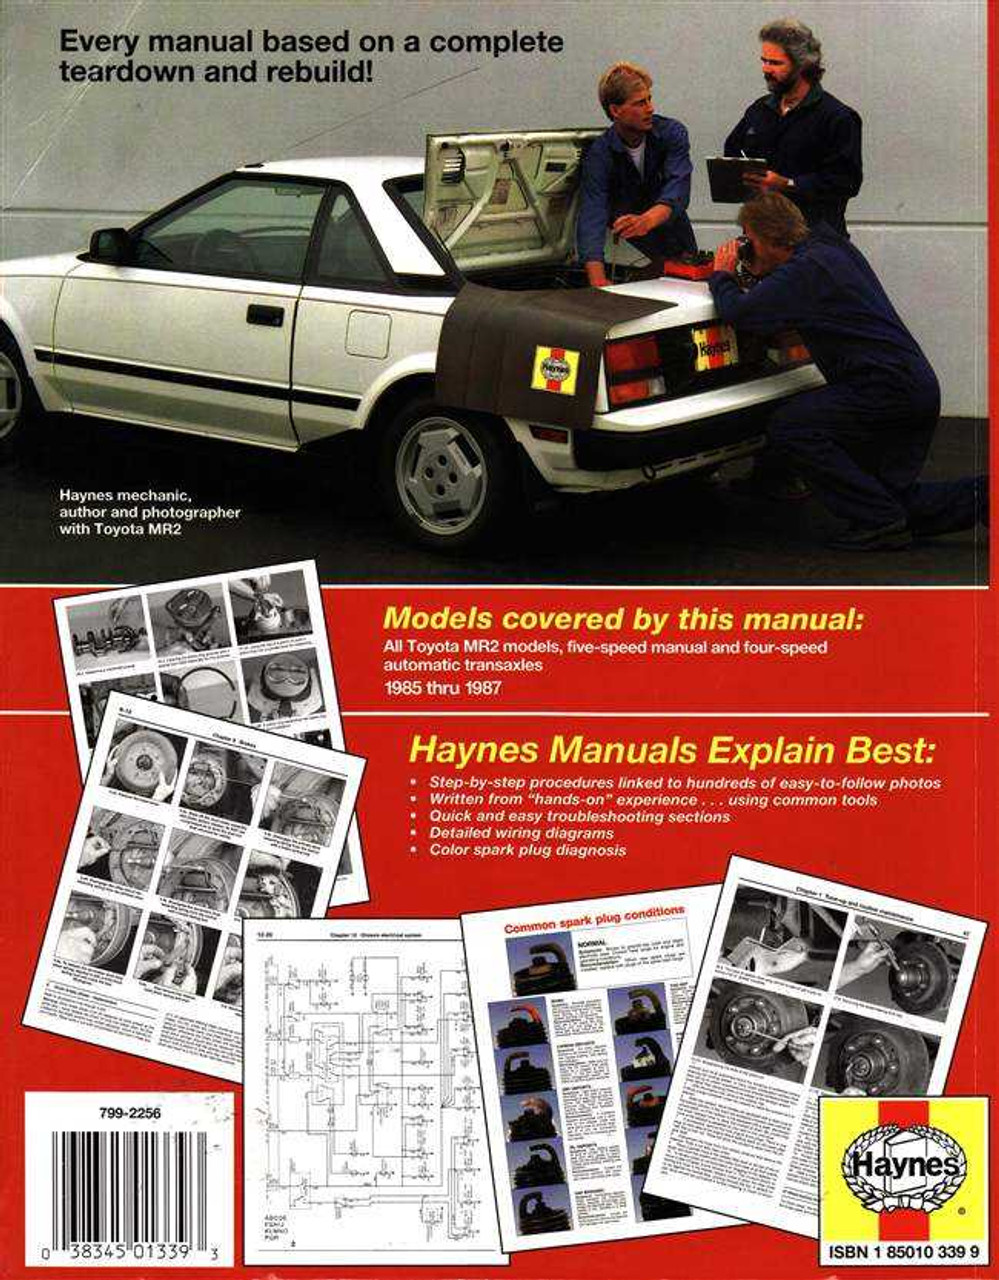 1987 toyota mr2 manual best user guides and manuals u2022 rh raviteja co Toyota Celica 1991 toyota mr2 service manual